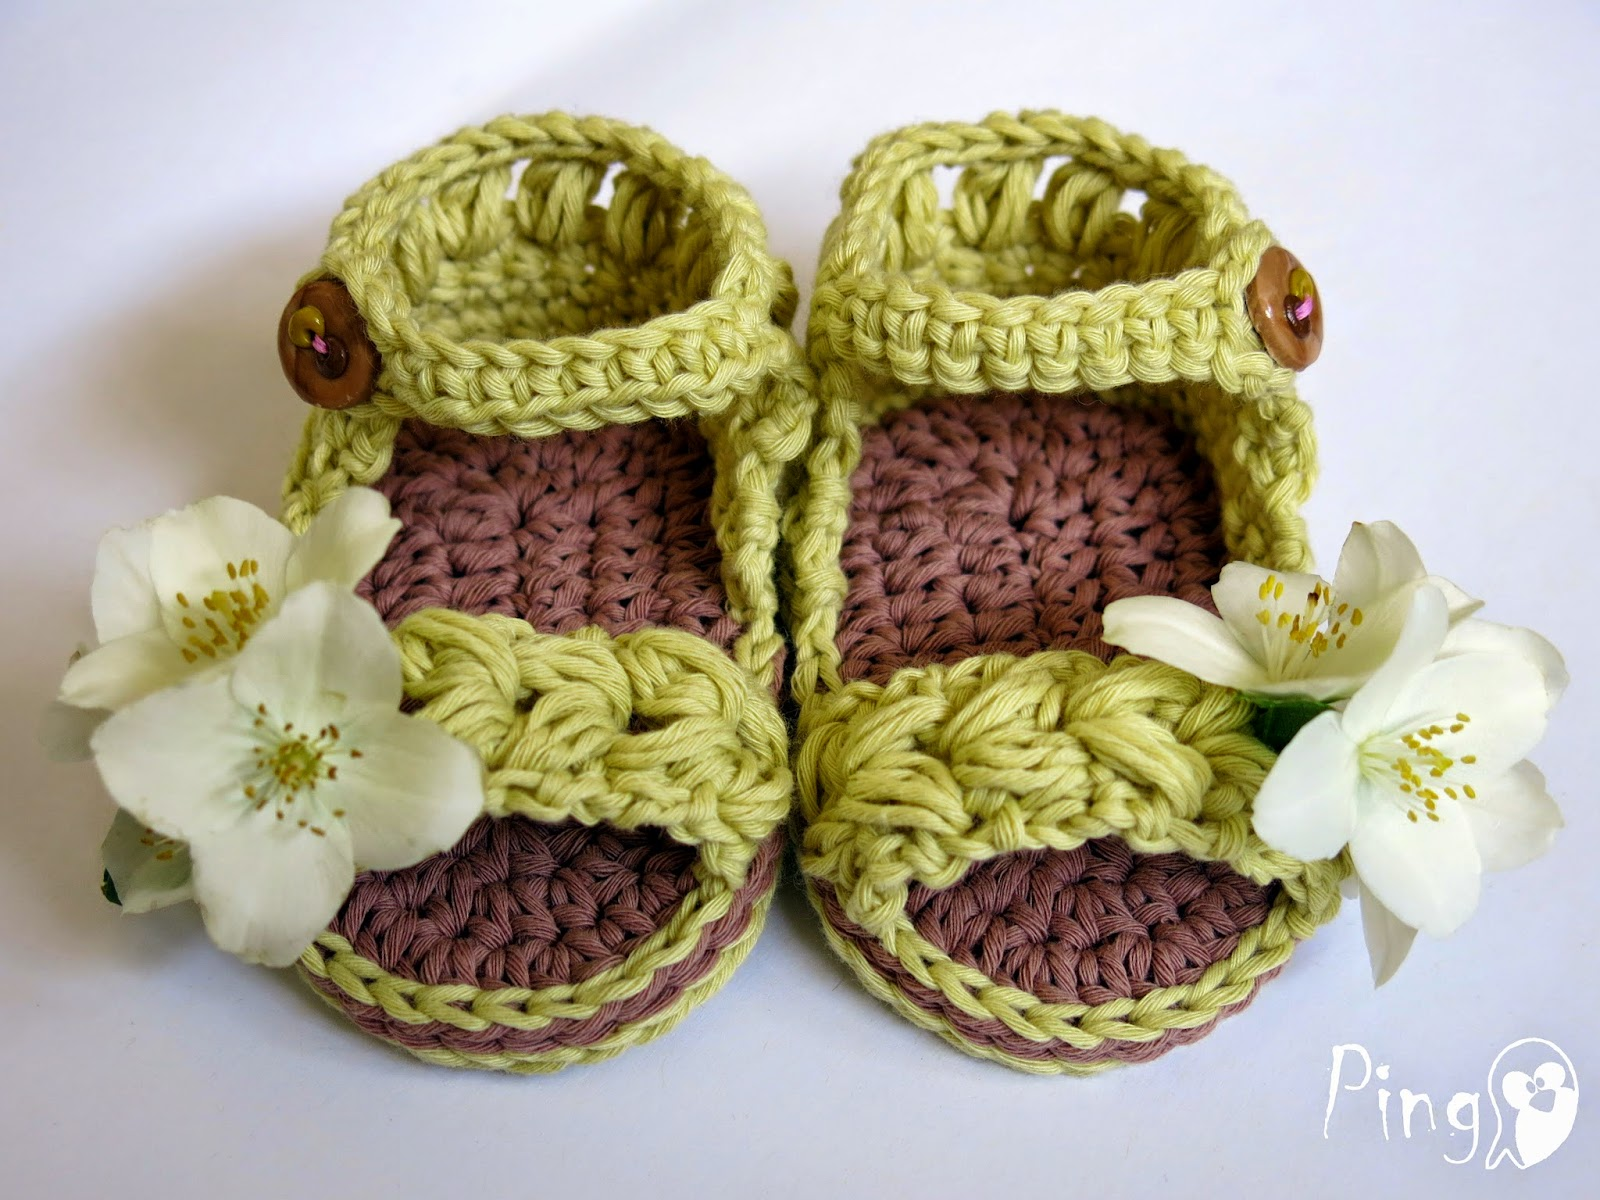 Pingo the pink penguin baby sandals vivi o baby sandals vivi crochet pattern by pingo the pink penguin bankloansurffo Image collections